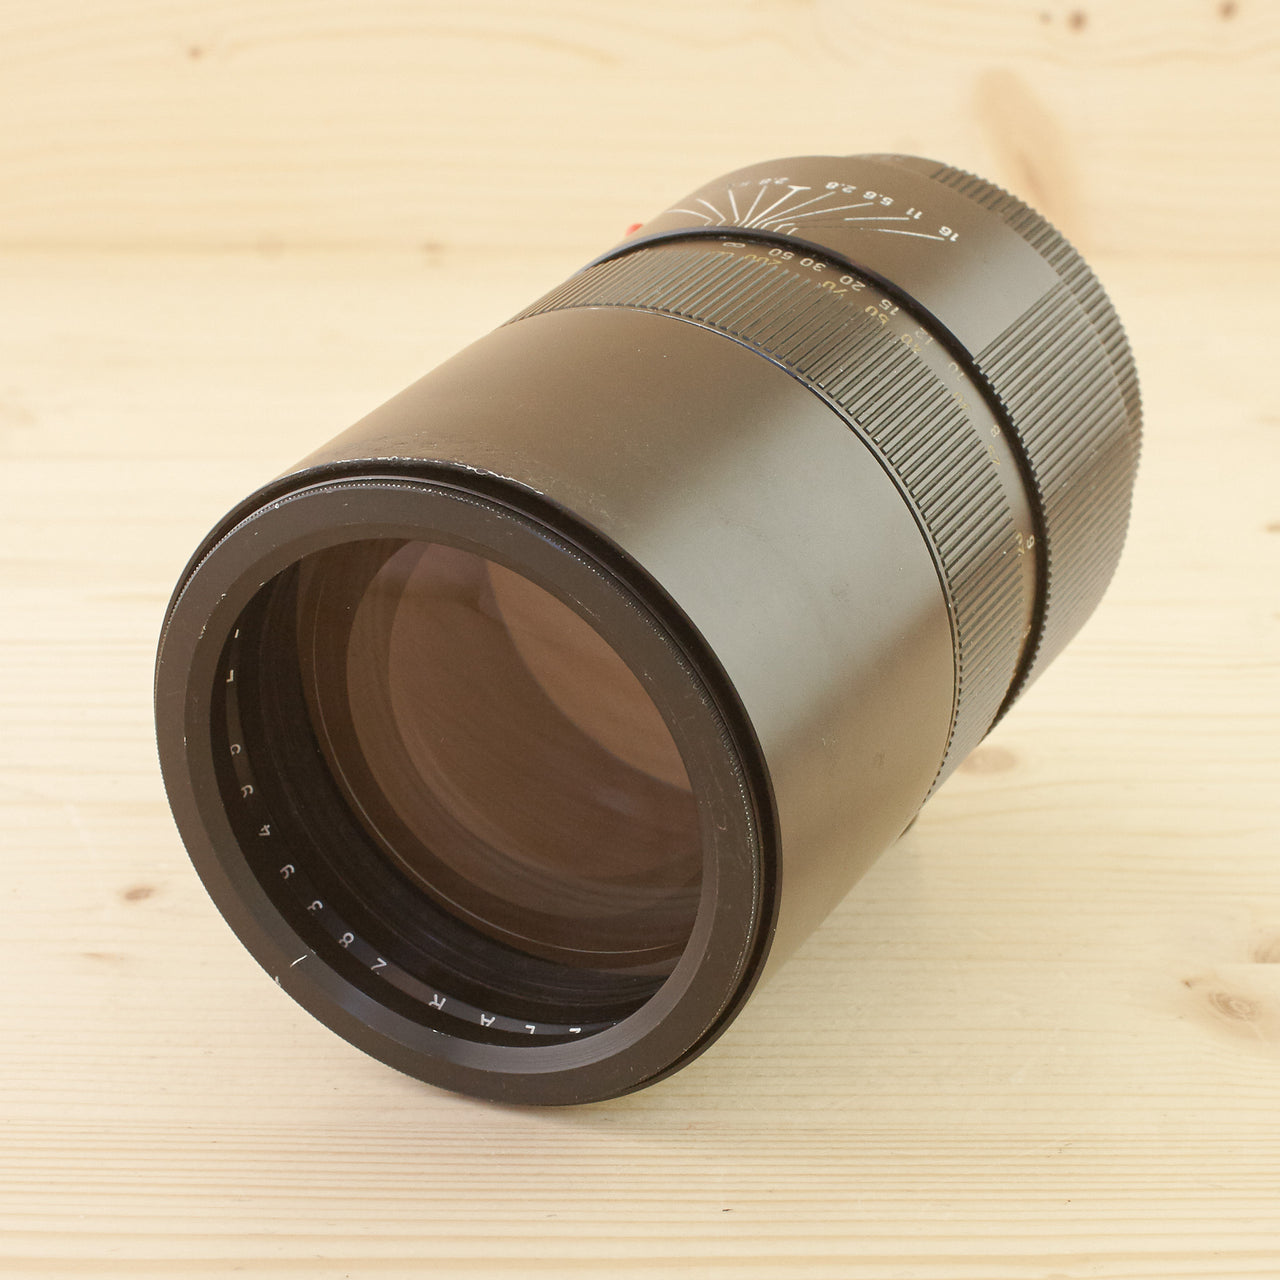 Leica-R 180mm f/2.8 Elmarit Avg - West Yorkshire Cameras